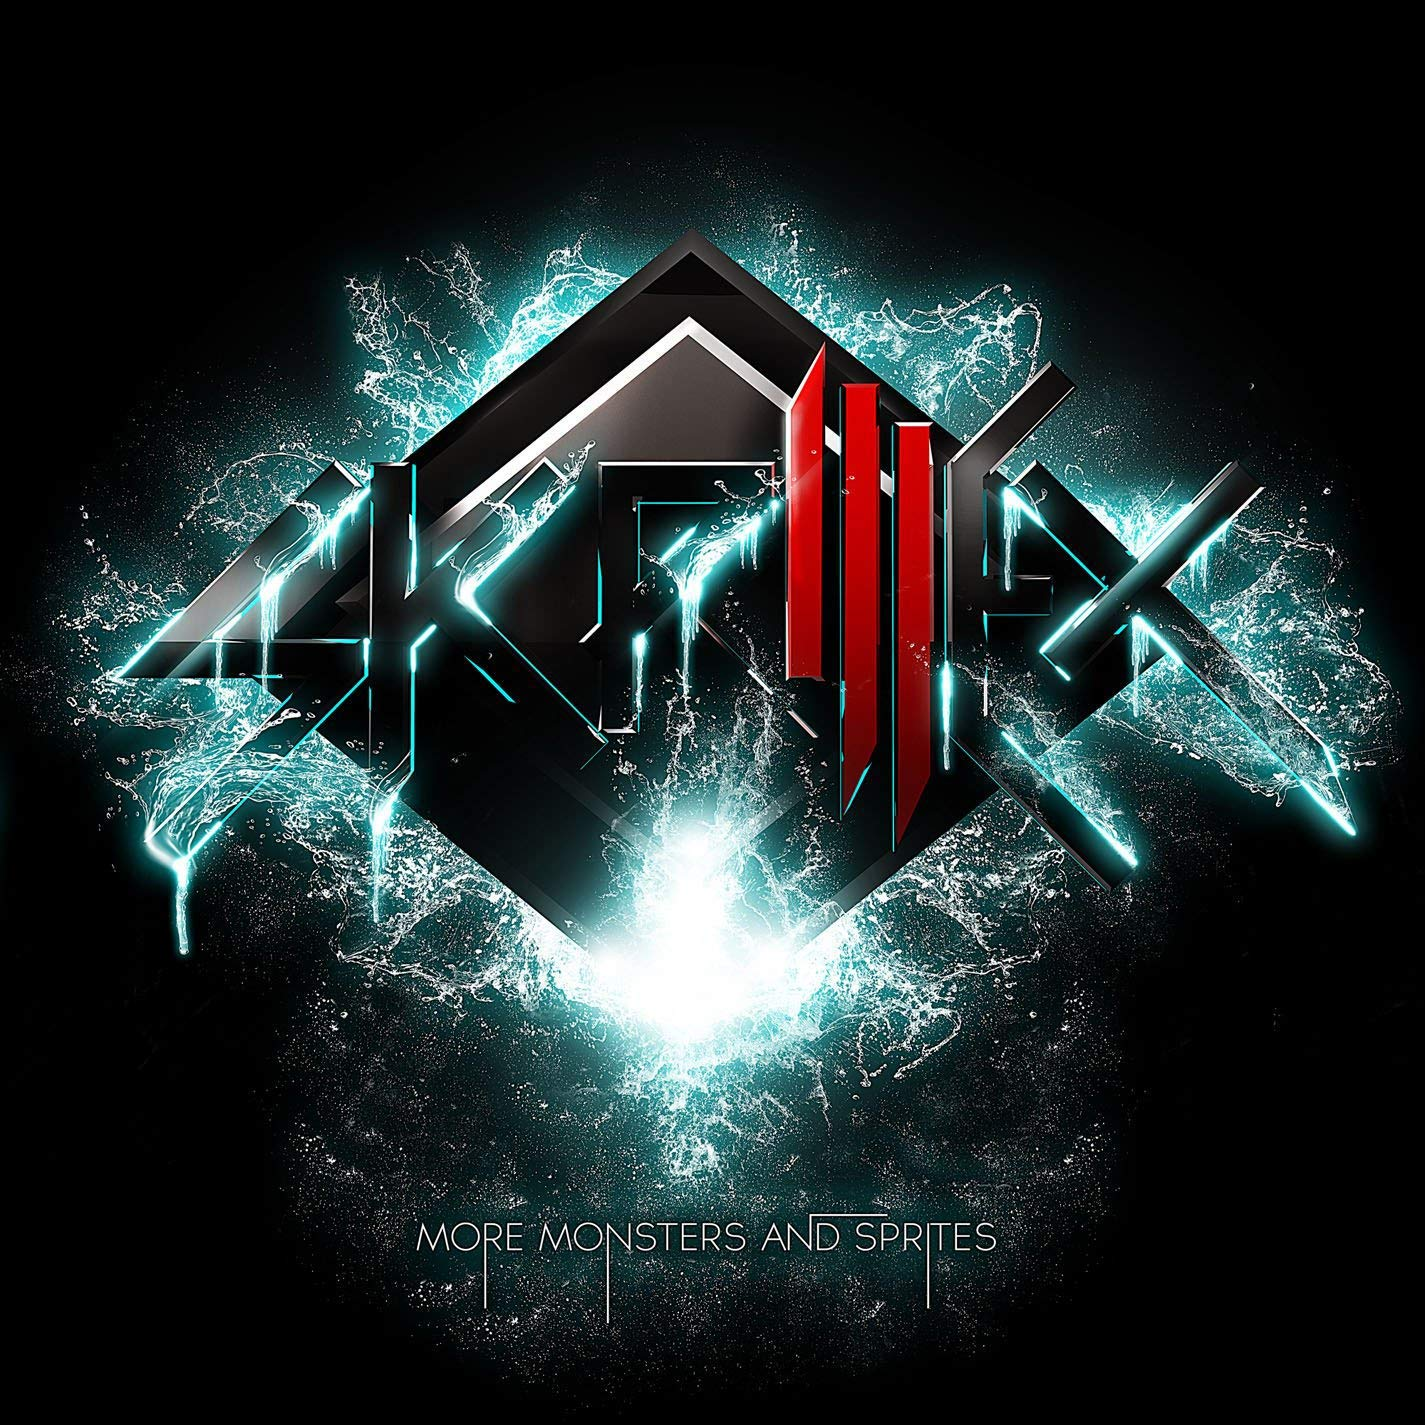 Art for Scary Monsters and Nice Sprites - Dirtyphonics Remix by Skrillex, Dirtyphonics